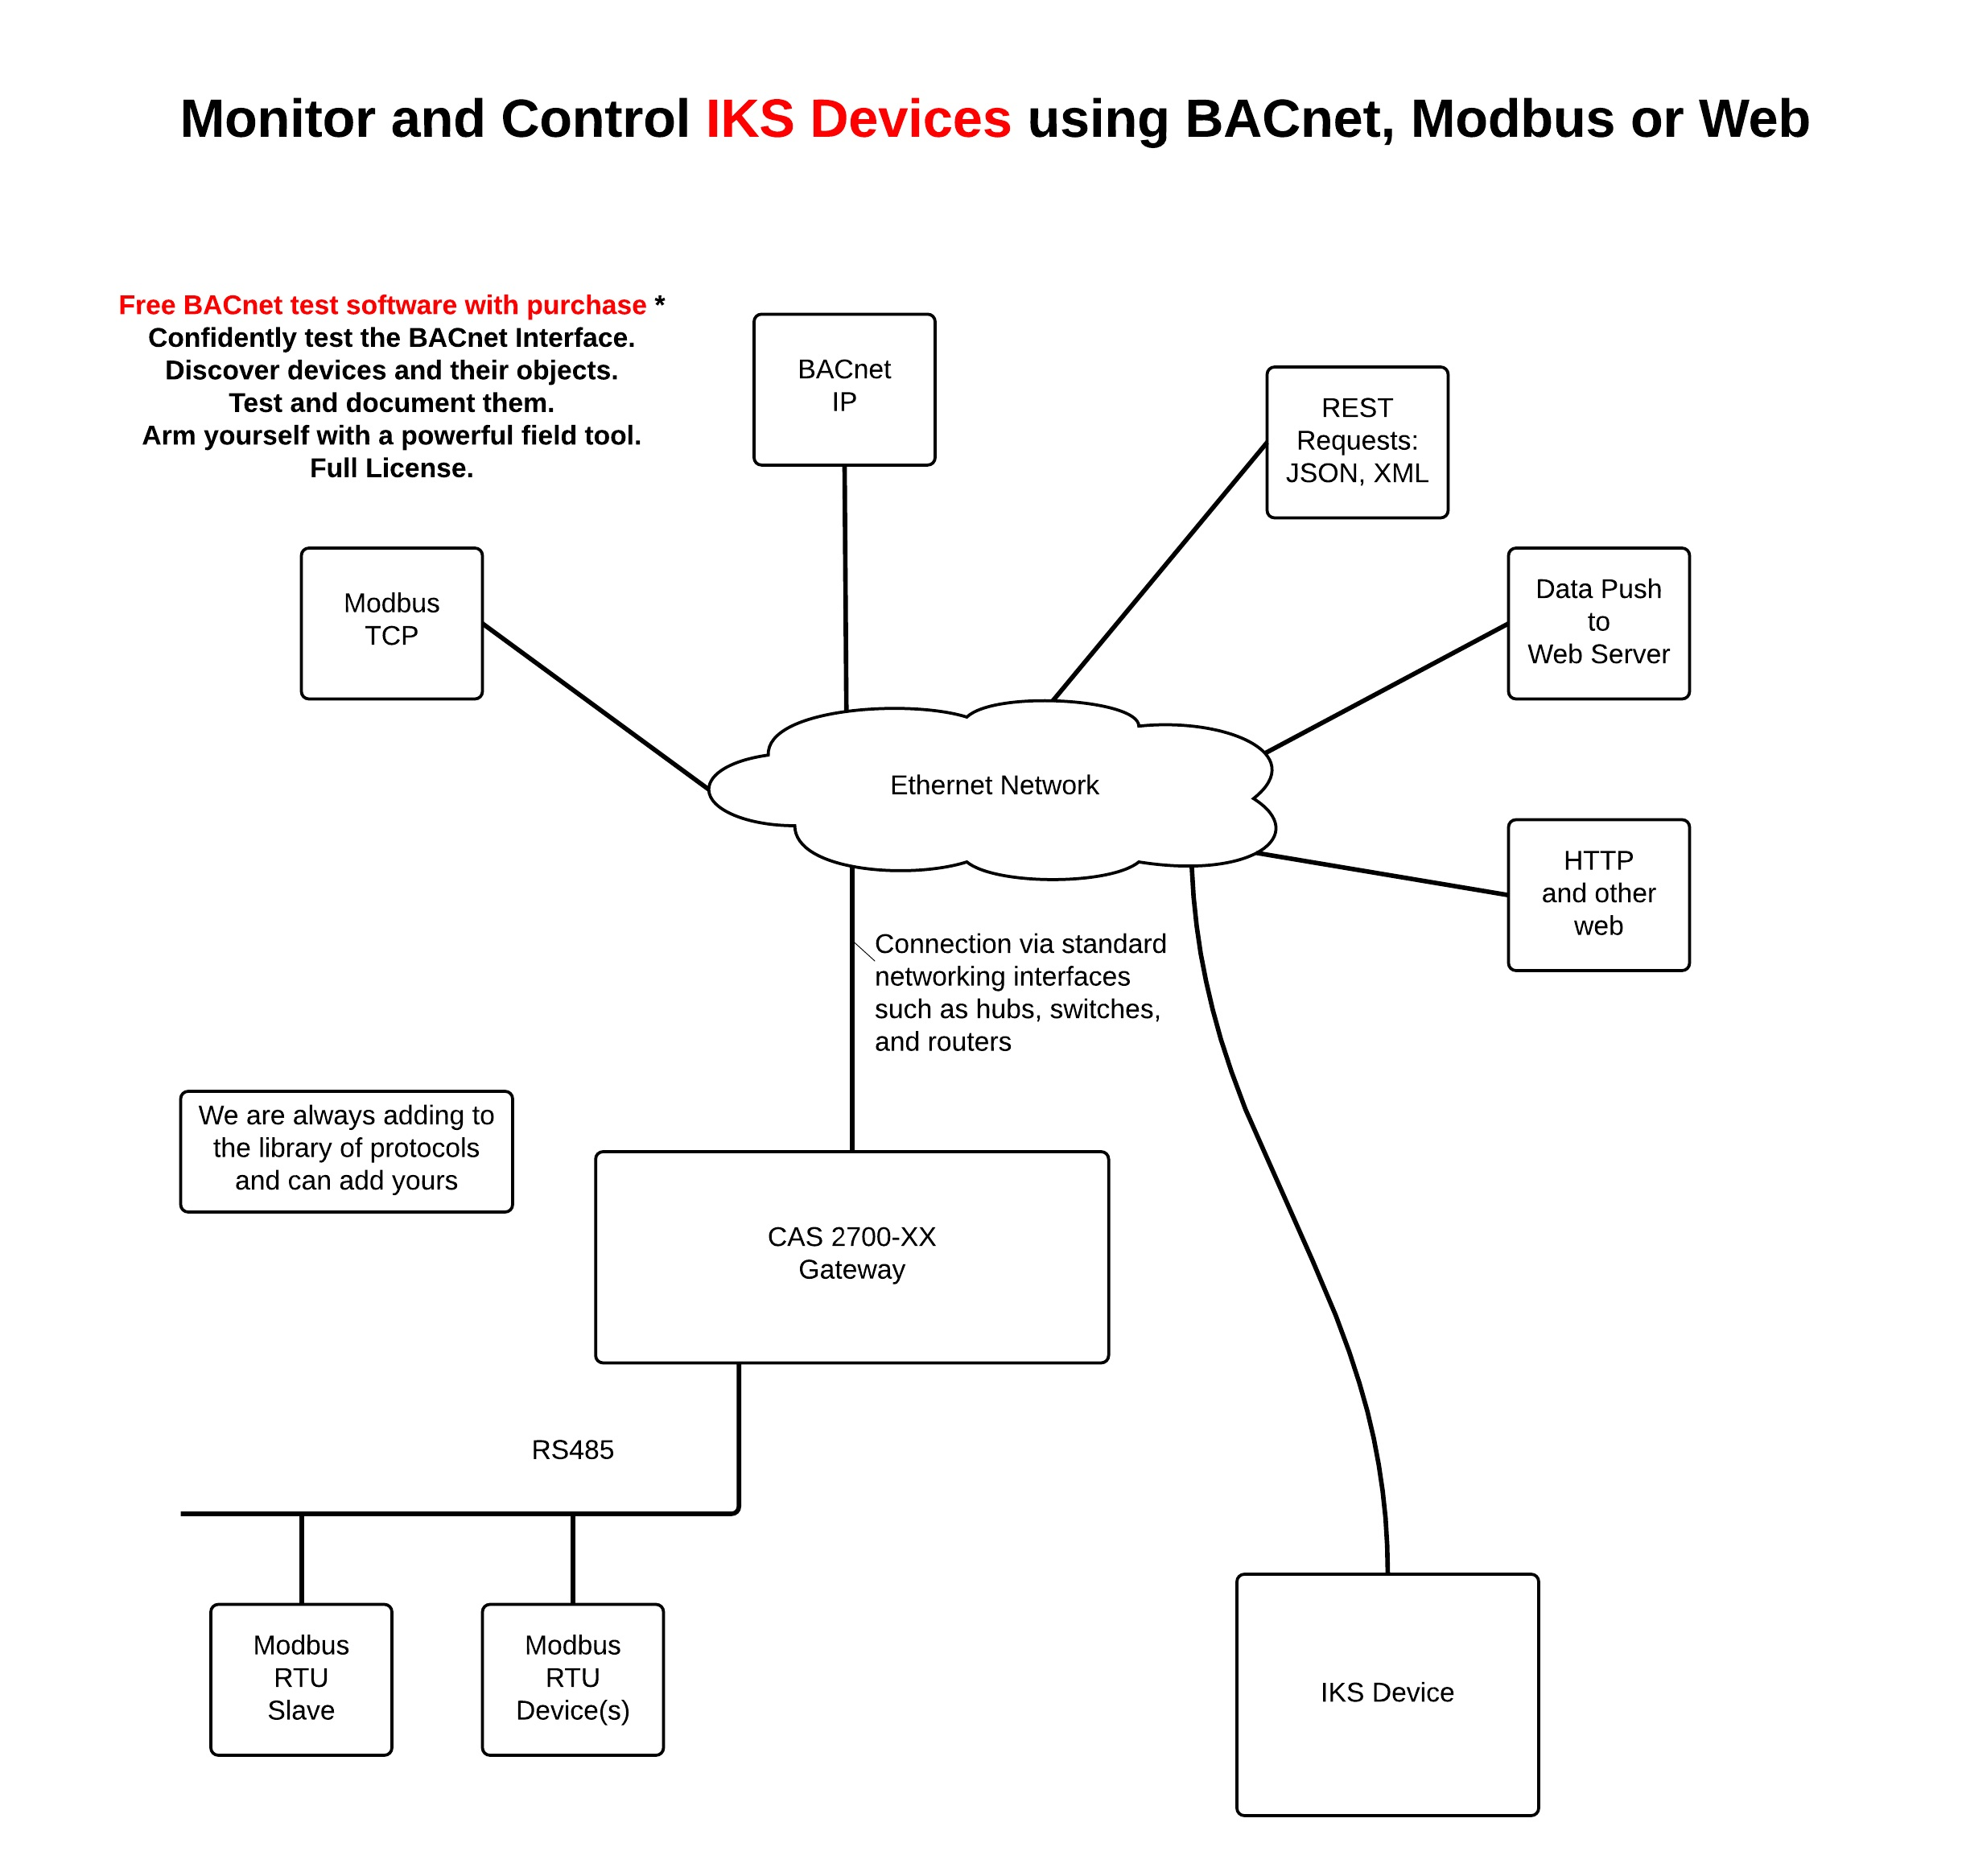 /2017/mar/10-13-04-44_CAS2700-42 IKS Gateway Connection Diagram.jpg